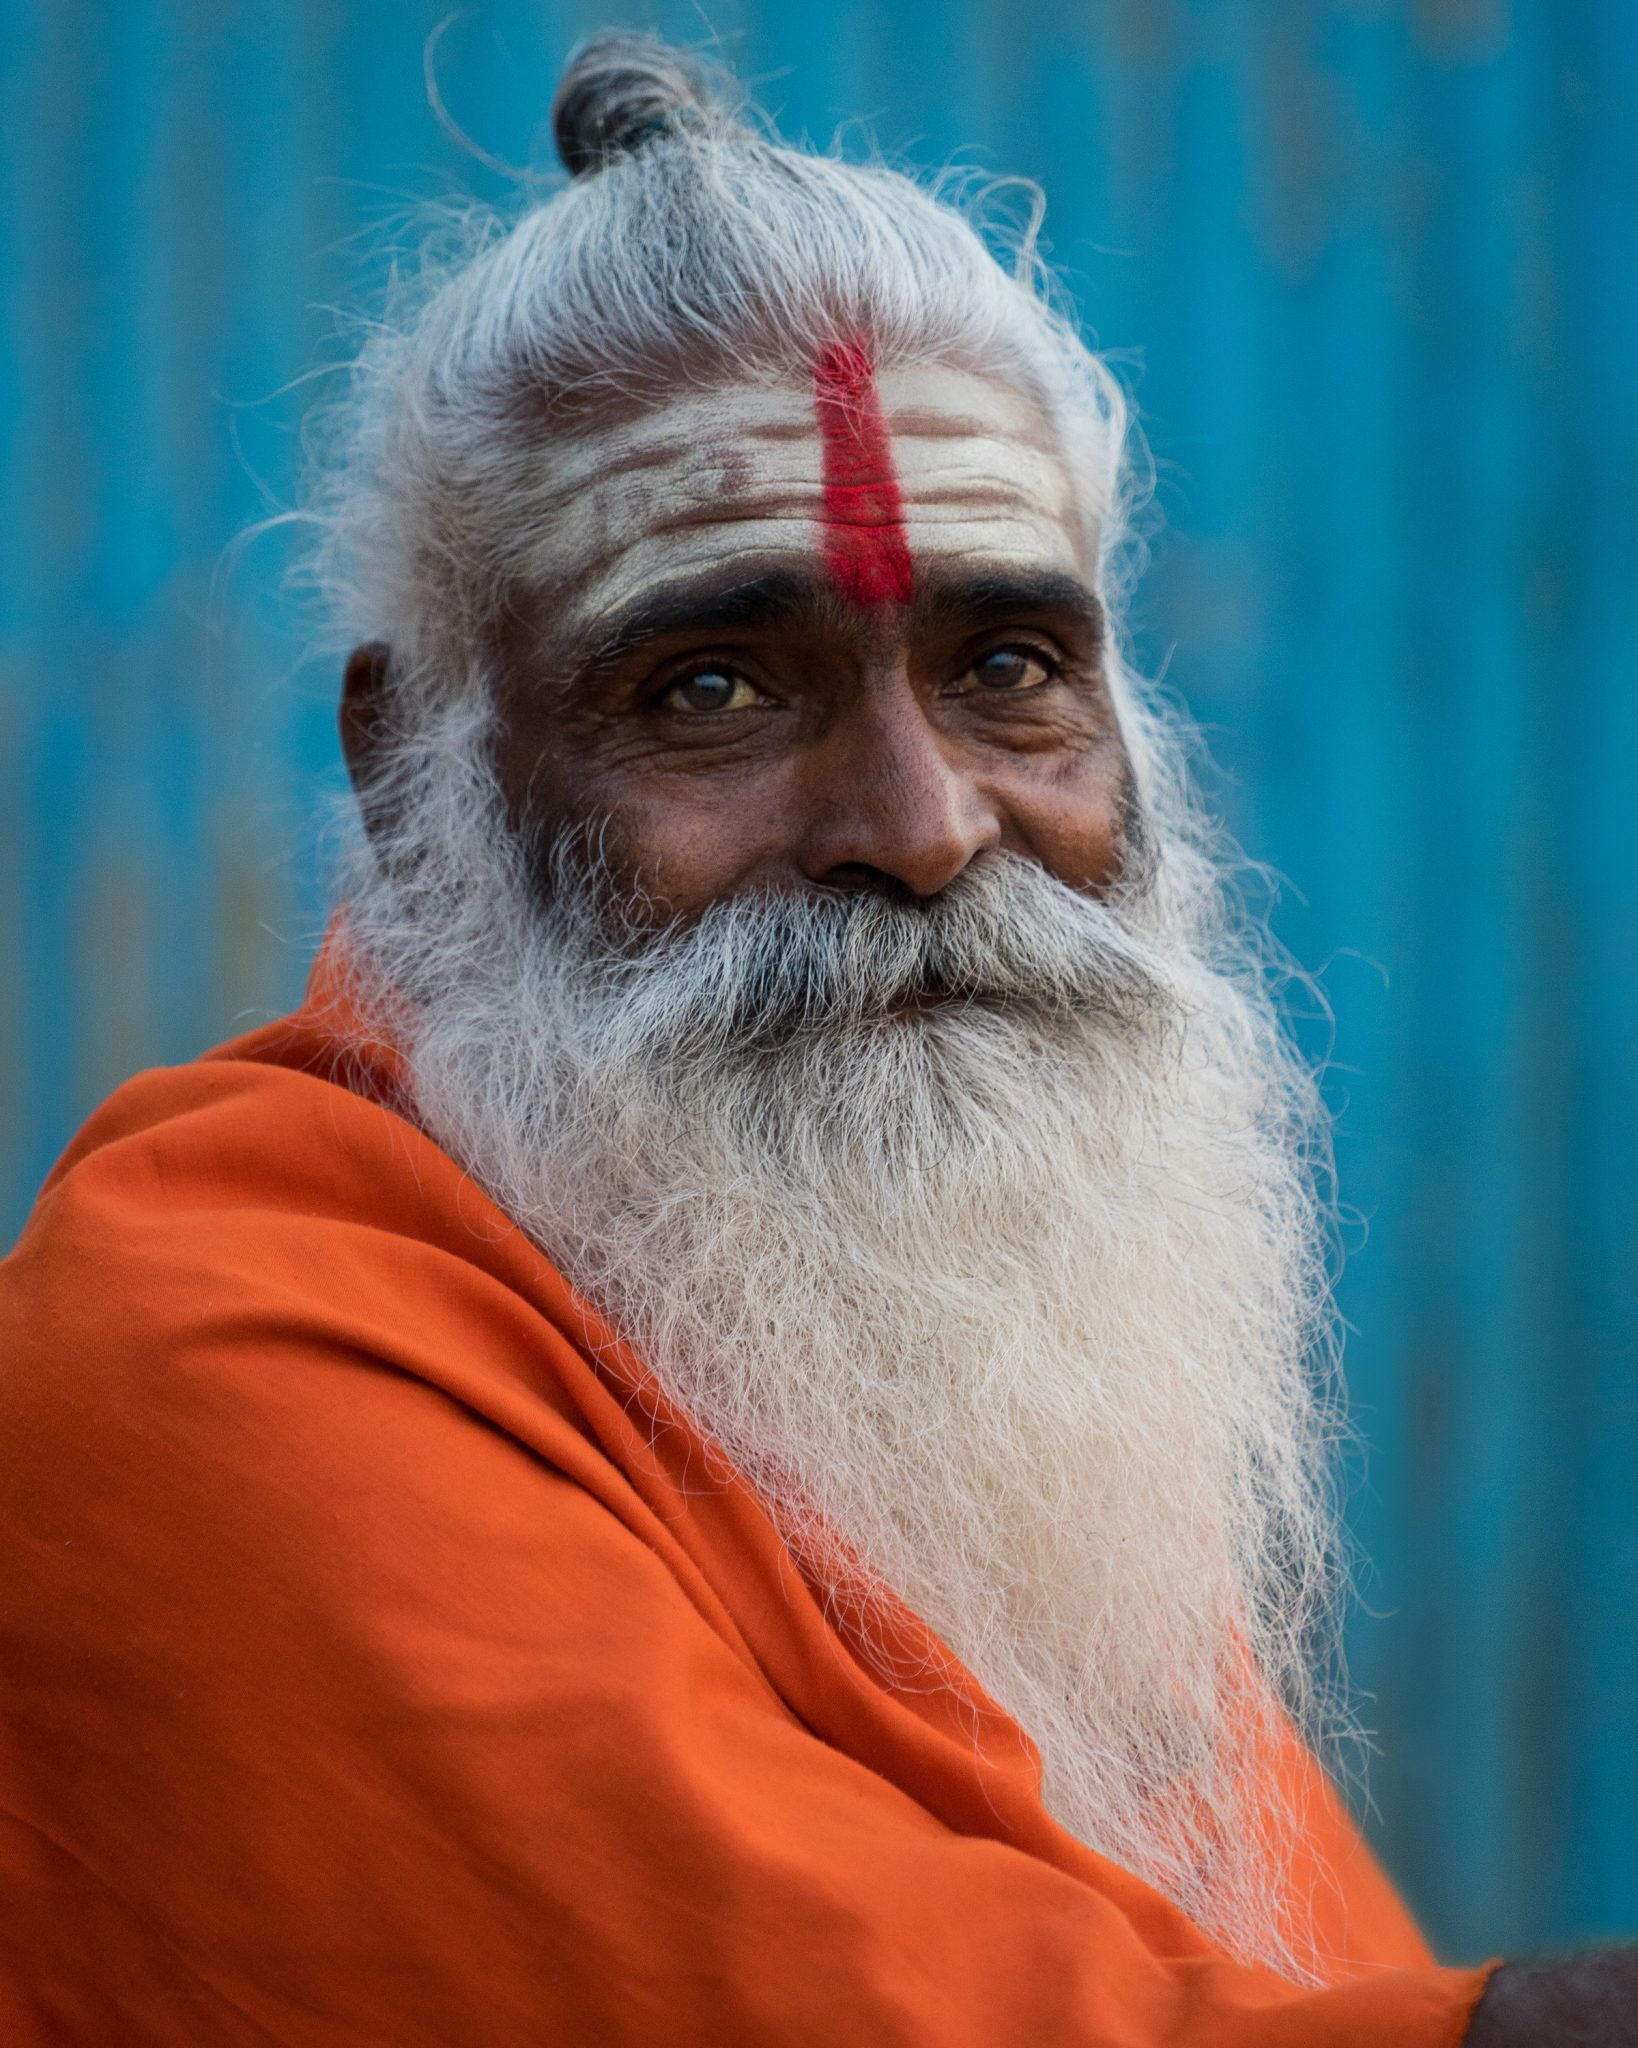 Sadhu at Sunrise, Varanasi, India